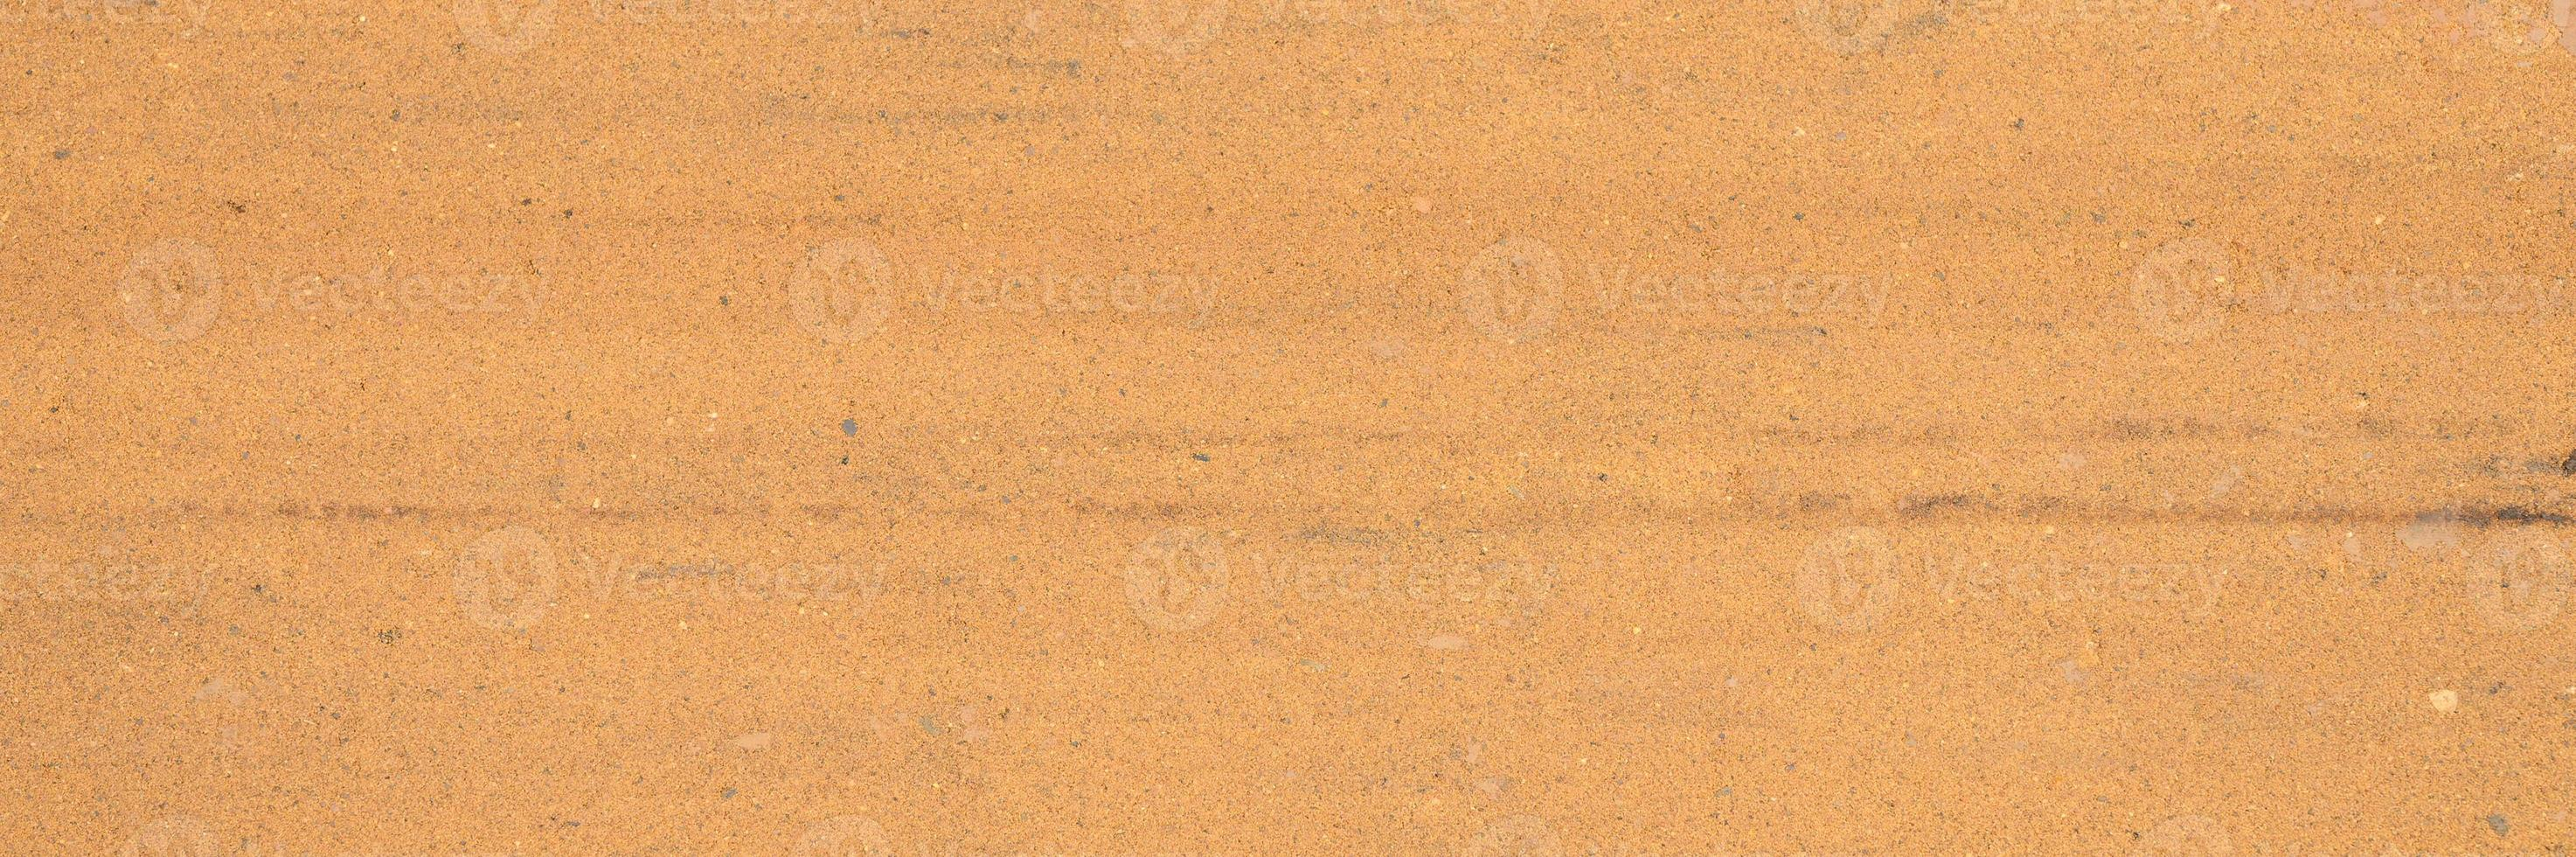 Background texture from the smooth surface of the sand photo